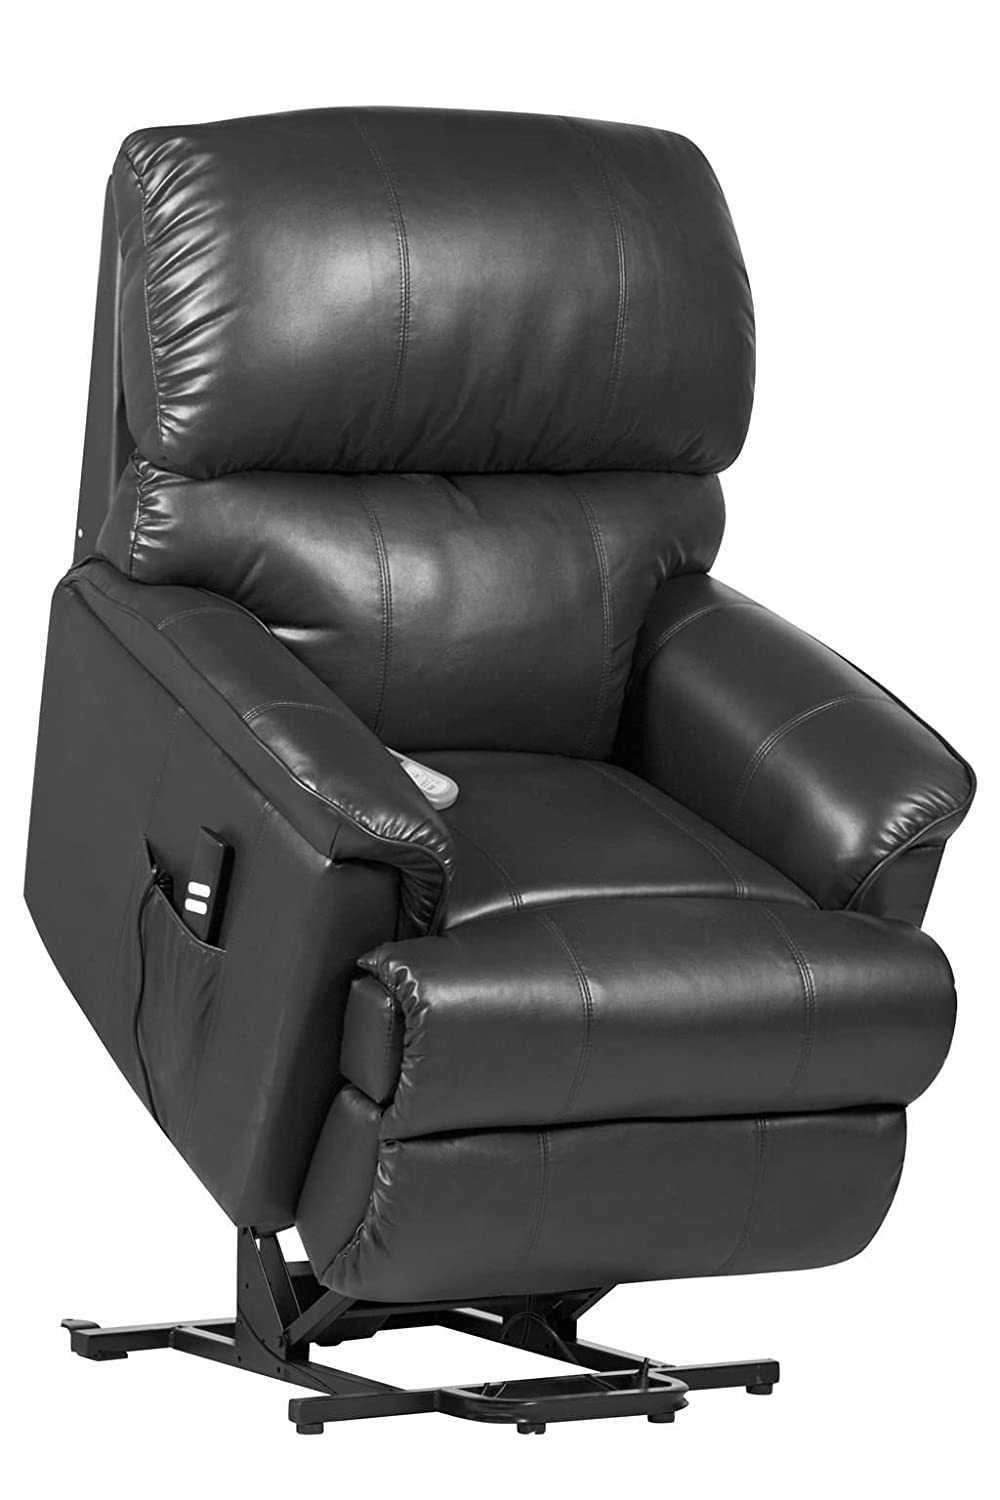 Canterbury Dual motor Leather Electric Riser Recliner Chair with heat and massage - 3 colours (Black) rise and recline Amazon.co.uk Health \u0026 Personal Care  sc 1 st  Amazon UK & Canterbury Dual motor Leather Electric Riser Recliner Chair with ... islam-shia.org